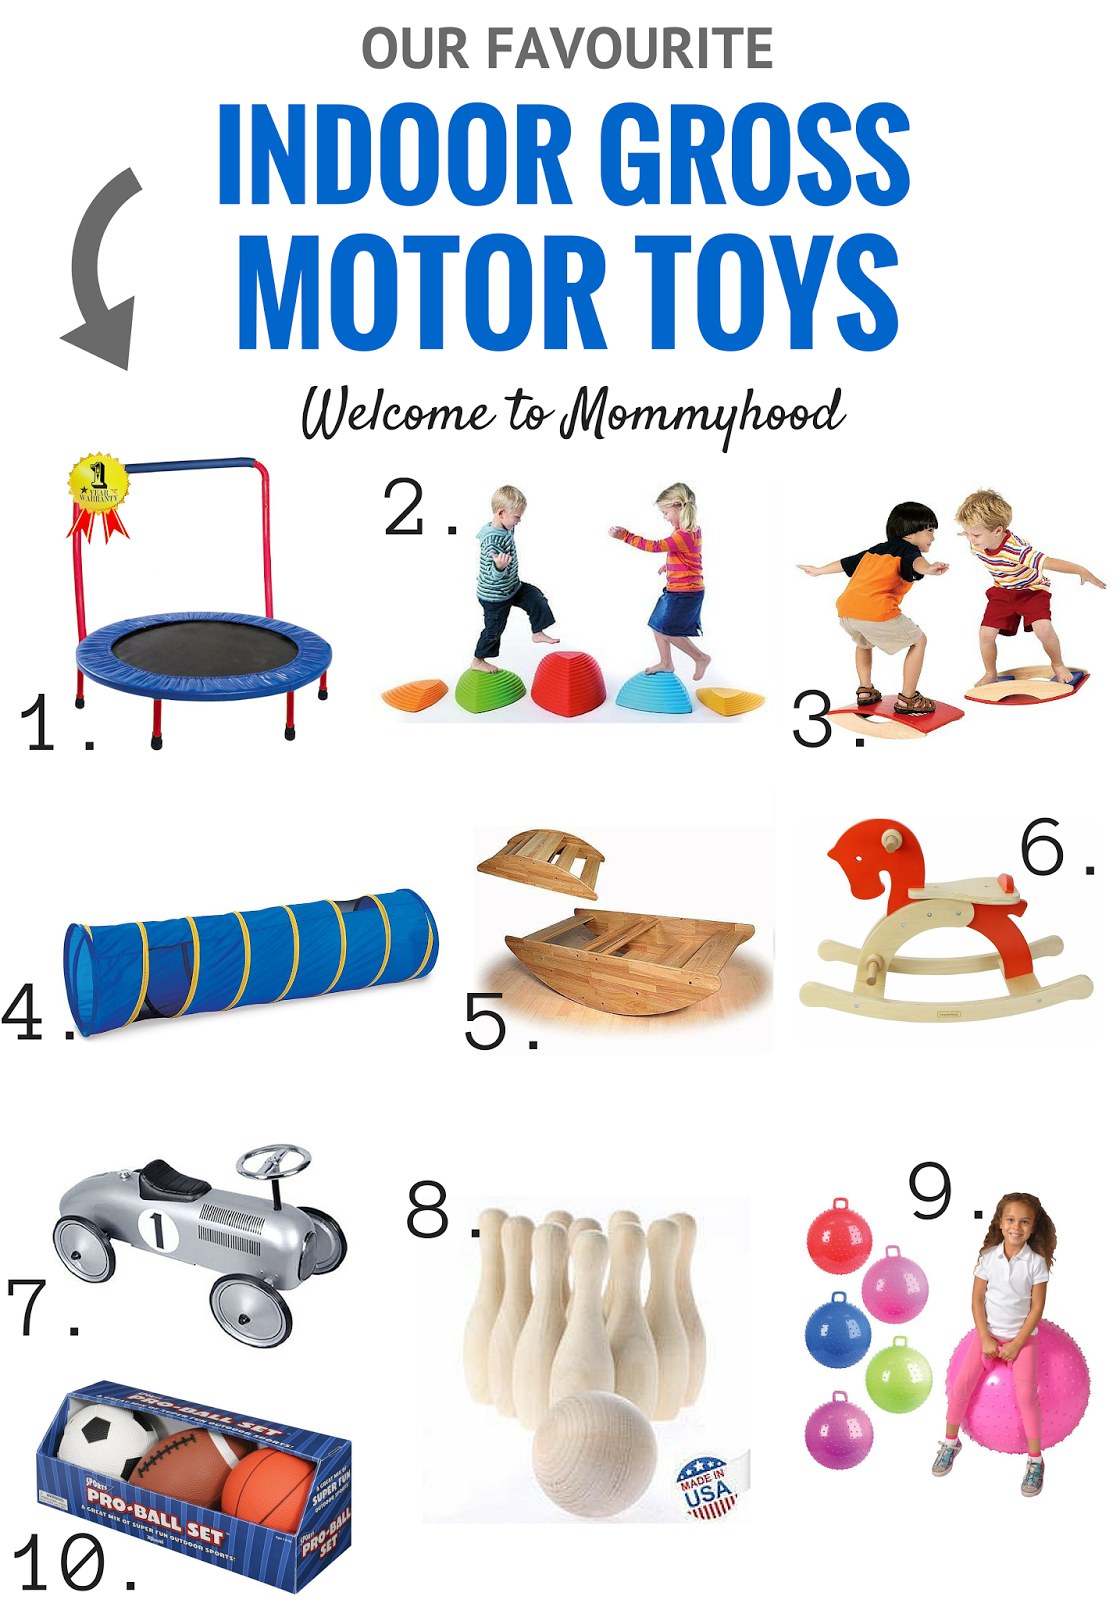 Gross Motor Toys : Our favourite indoor gross motor toys welcome to mommyhood